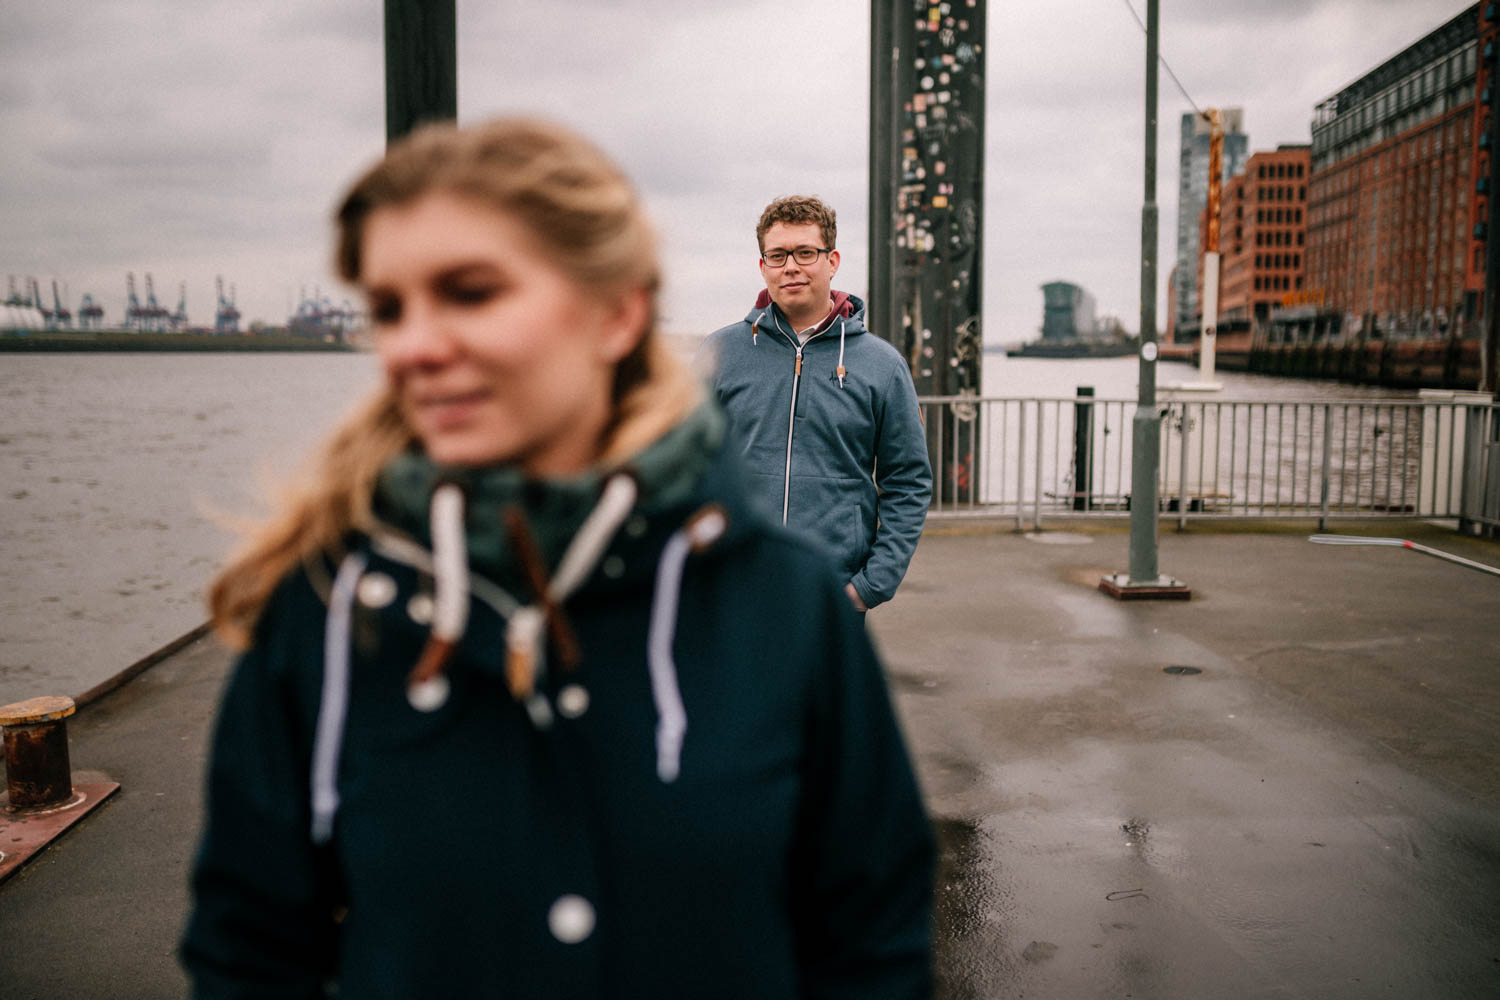 Engagementshooting, Hochzeitsfieber by Photo-Schomburg, Pärchenshoot, Hamburg, Elbe, Hamburger Hafen, Hochzeitsfotograf, Wedding, Coupleshoot-10